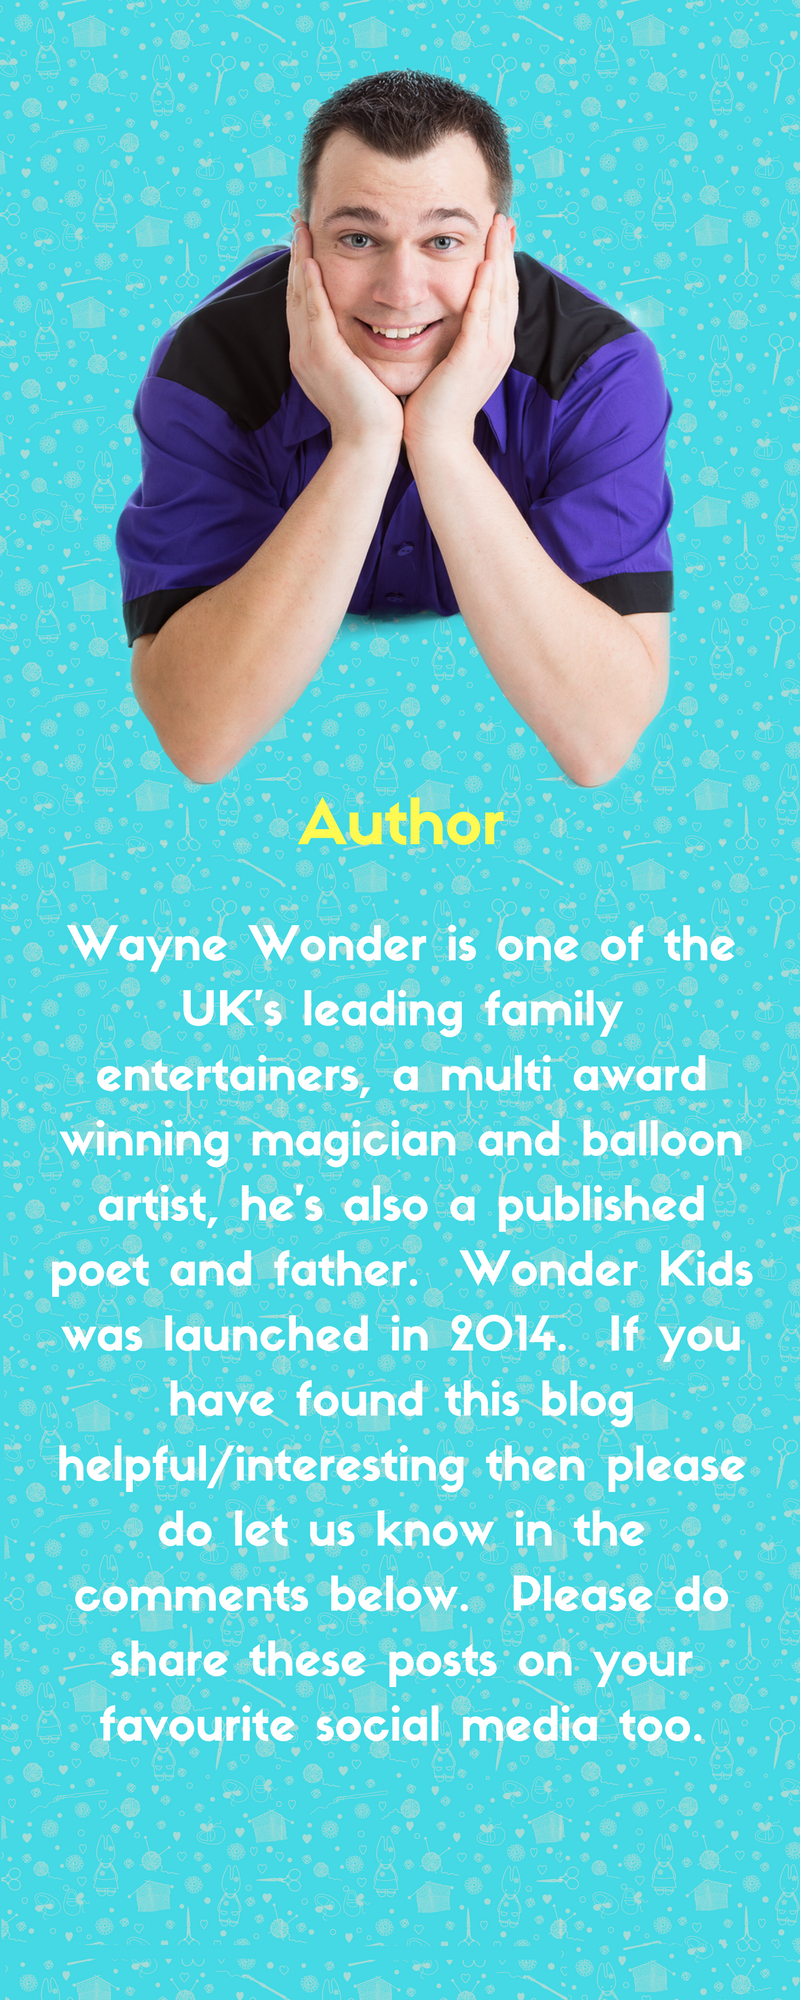 Wayne Wonder Author of Wonder Kids